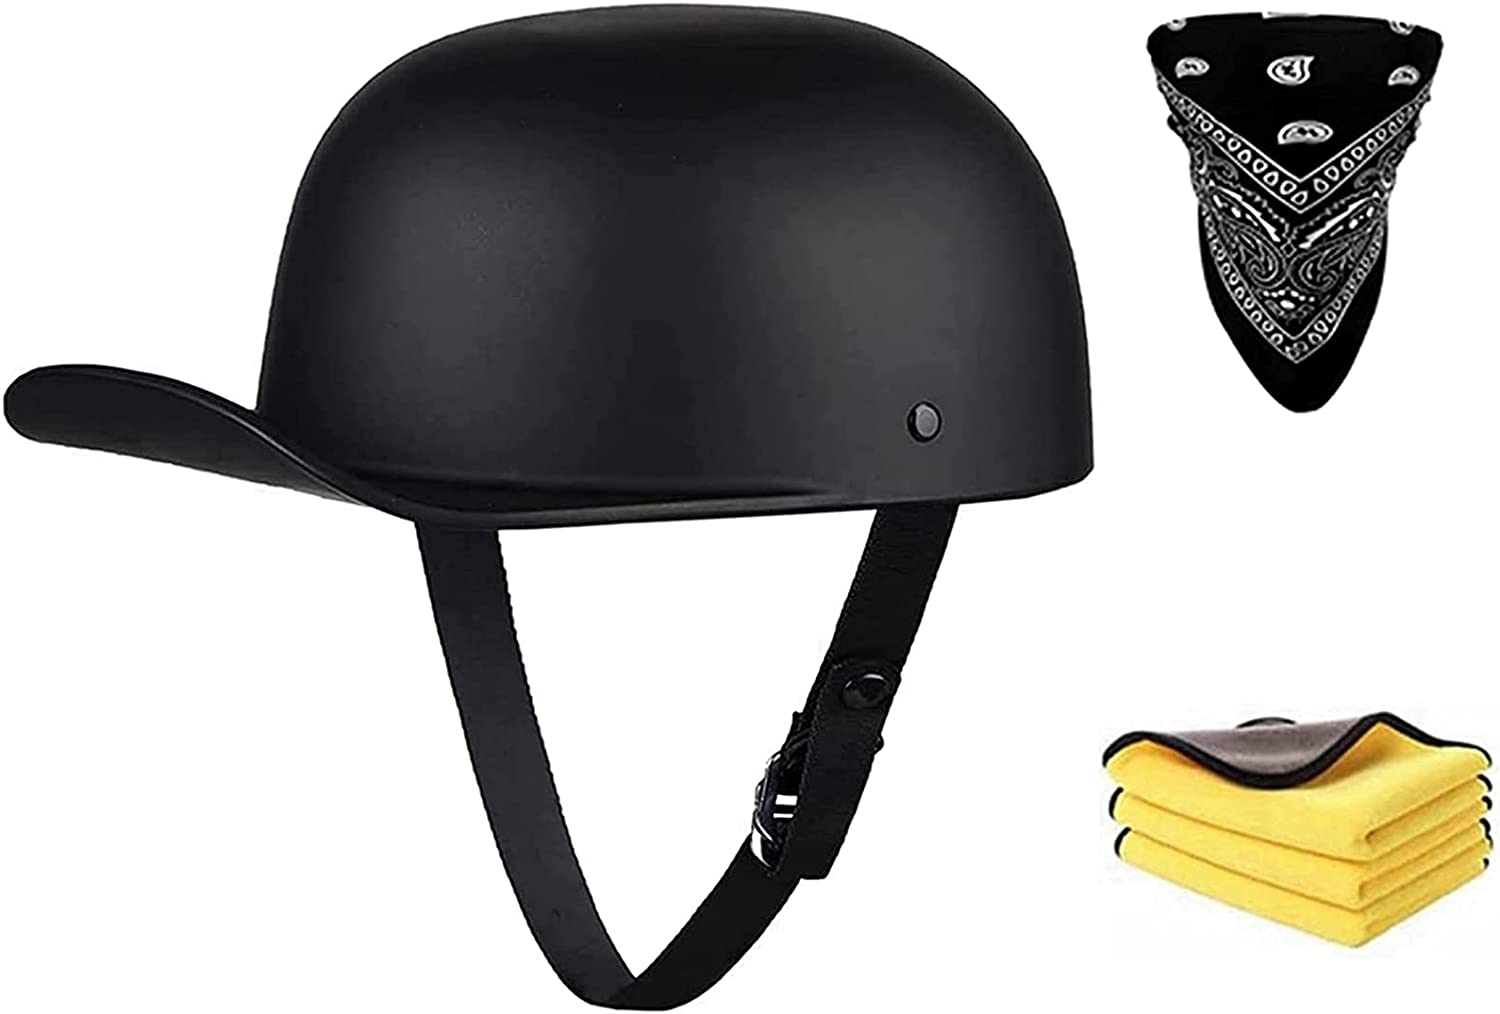 Challenge the Gorgeous lowest price Retro Open Face Half Motorcycle Helmet She